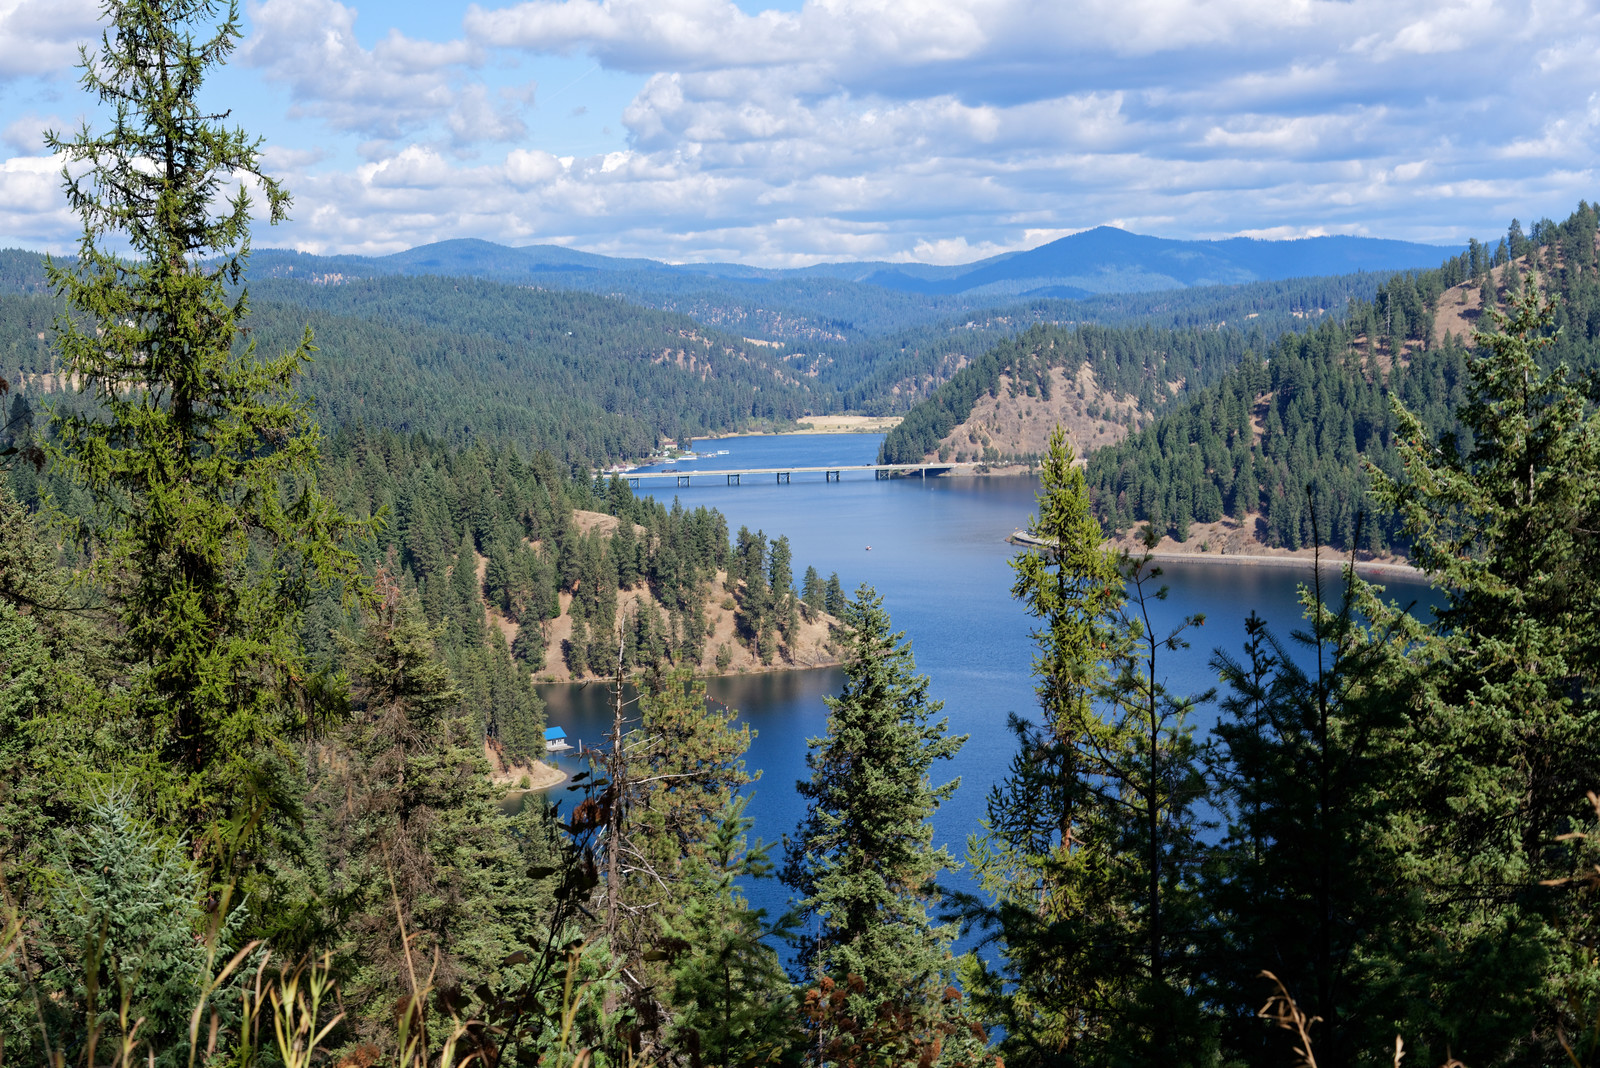 Photo from above looking down at lake coeur d'alene, with green pines lining the hills and mountains in the background with white billowy clouds and blue sky